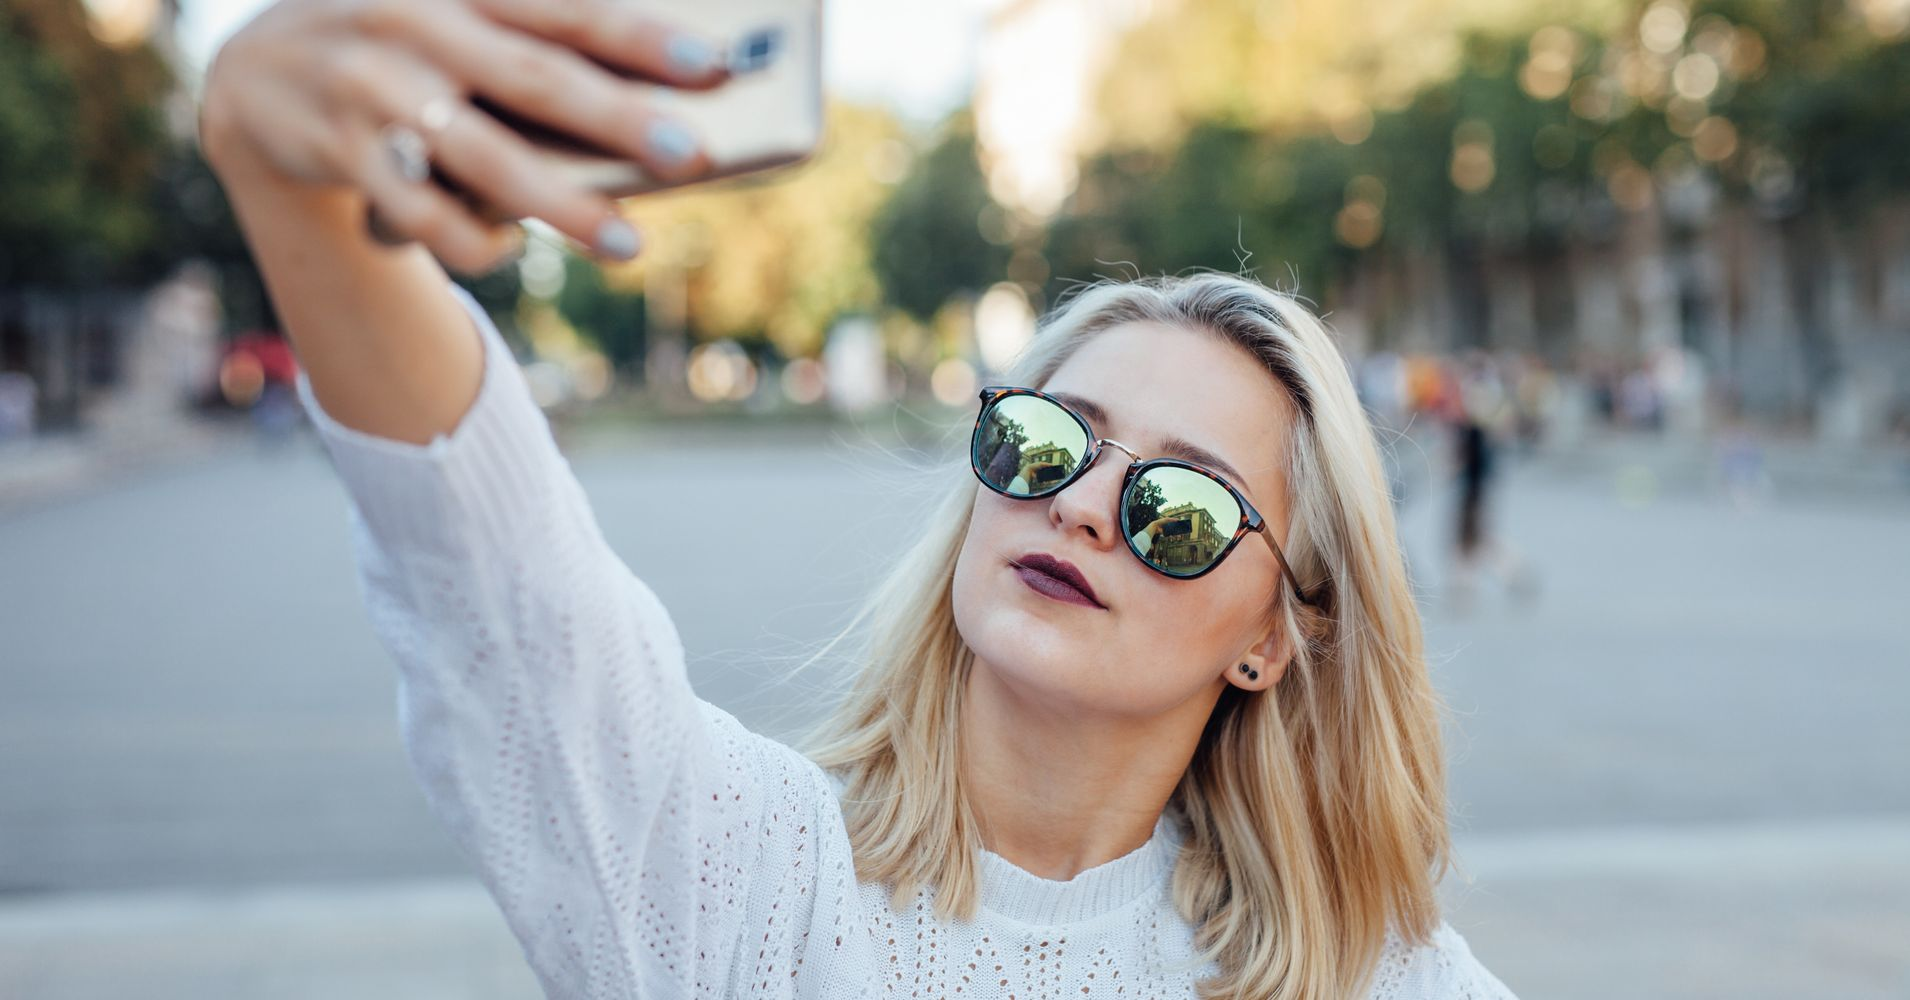 Instagram Is The Most Harmful App For Mental Health